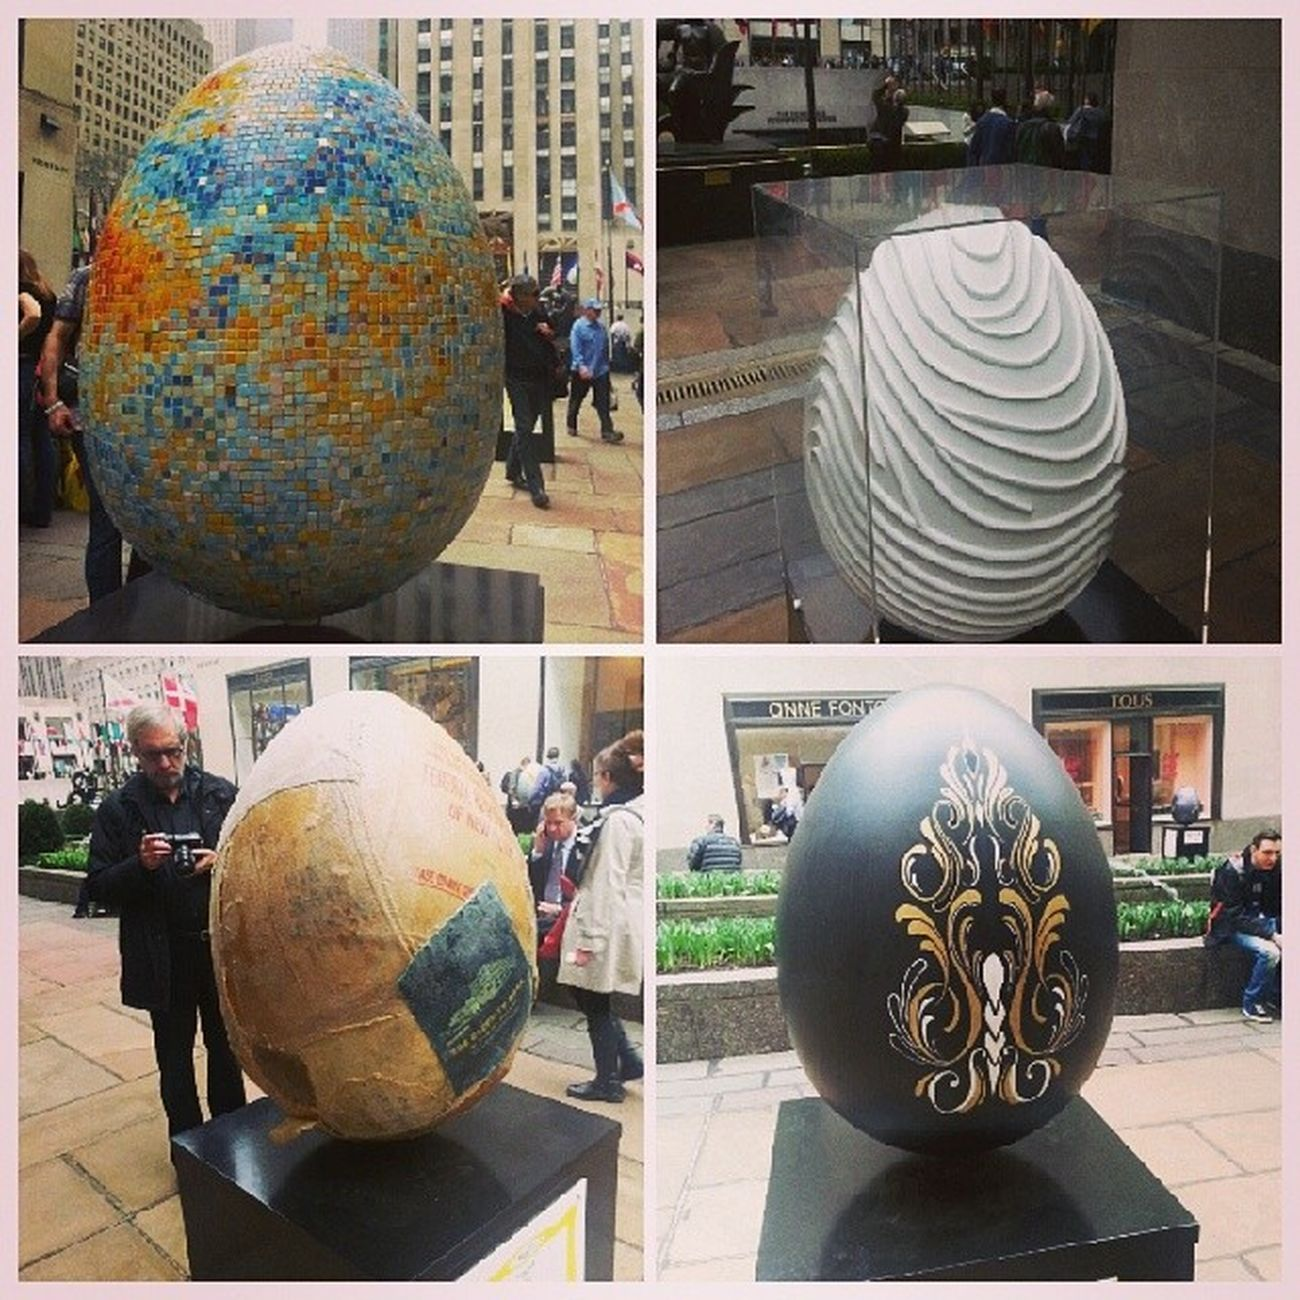 Microwave background mosaic, two joined fingerprints, currency bags (called Nest Egg, hehe), slick tattoo style. Egg94 Egg14 Egg202 Egg185 thebigegghuntny